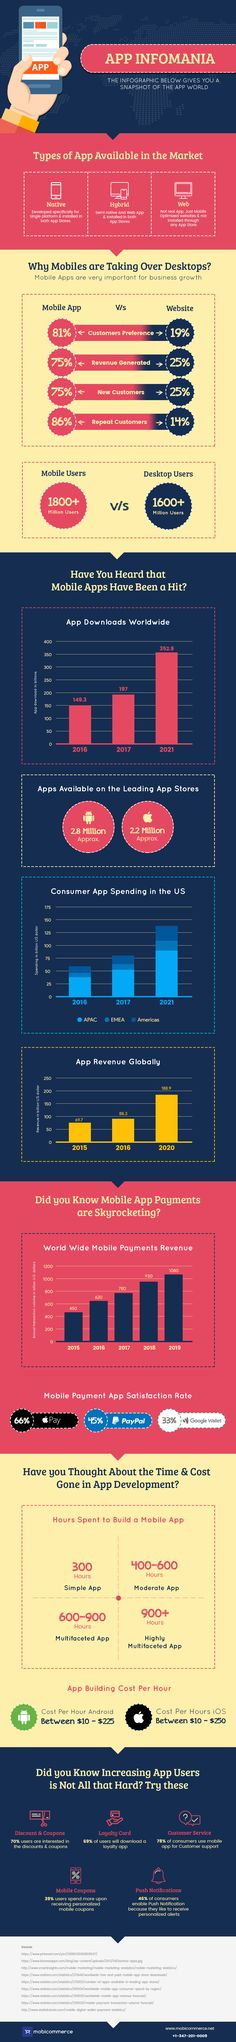 Mobile App Infomania, an Infographic that gives you a snapshot of the app world. Know from the stats that how mobile apps help to grow your business.